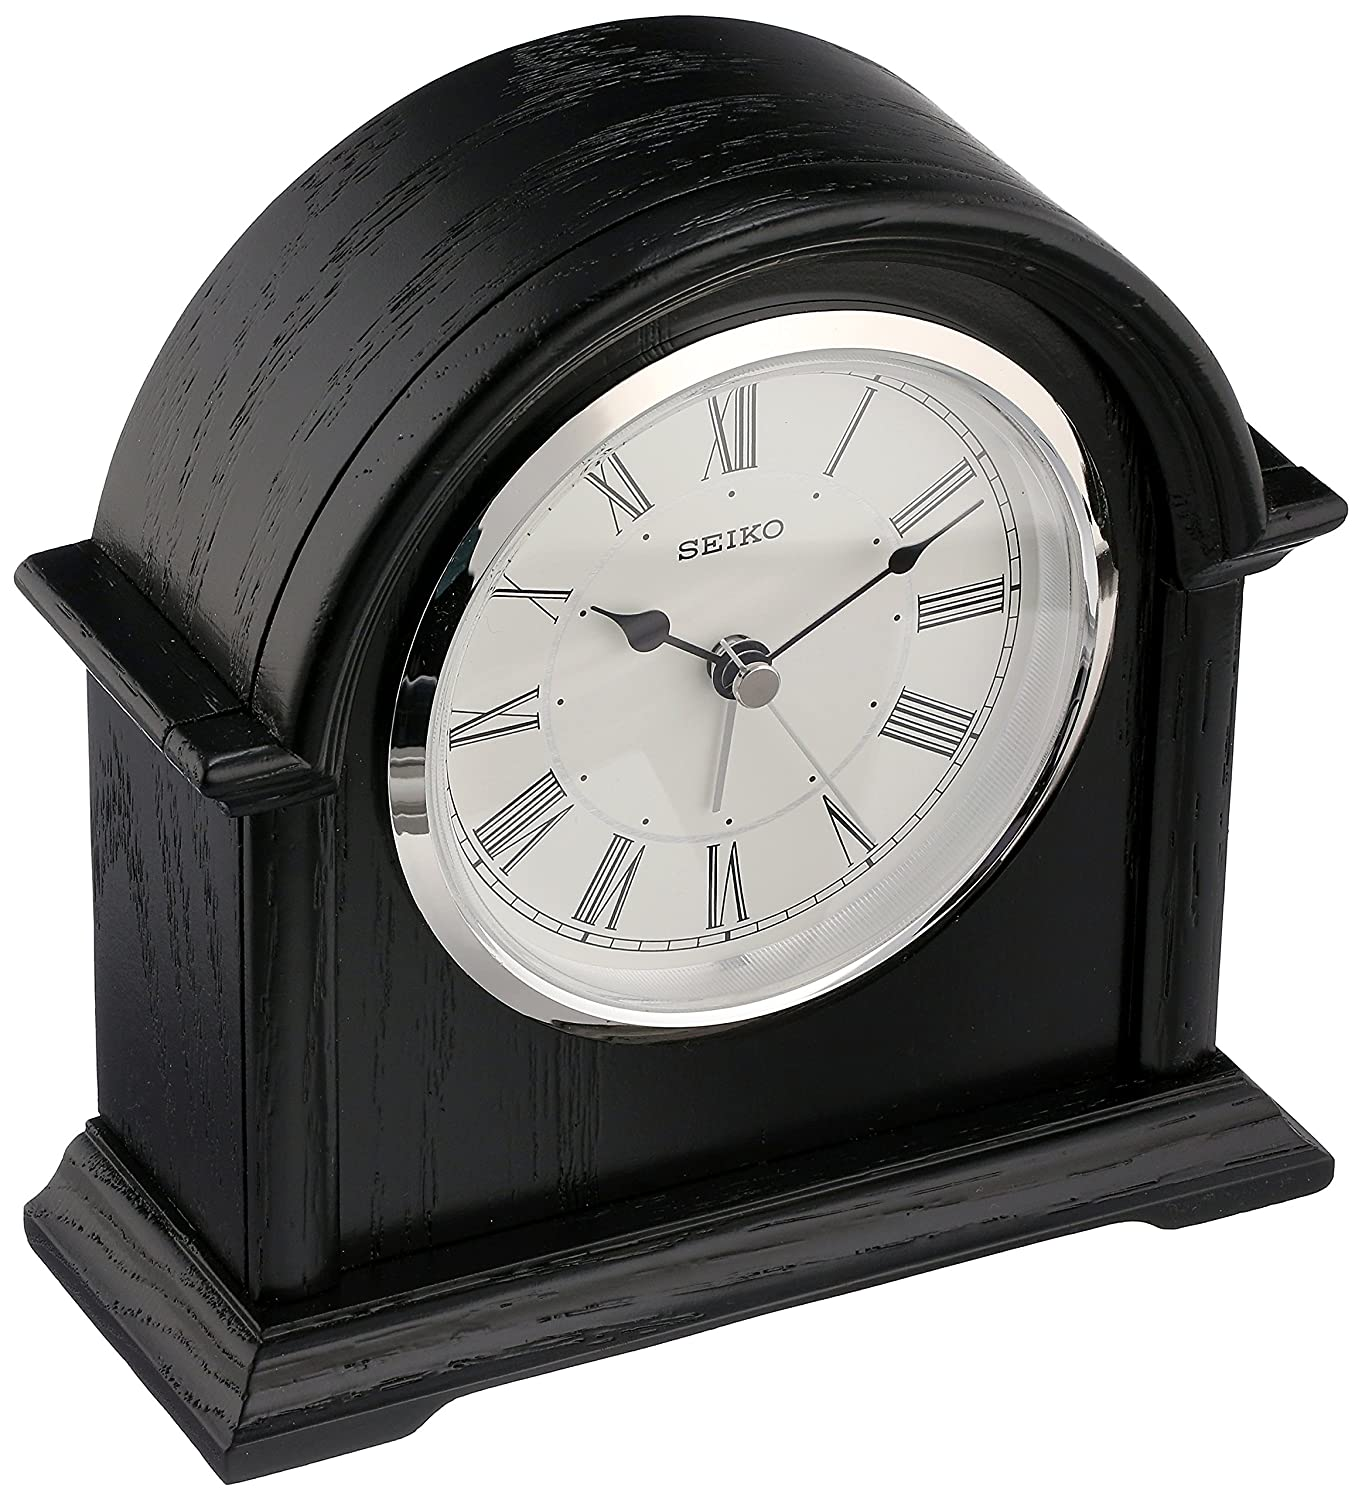 Seiko Desk Clock Replacement Parts